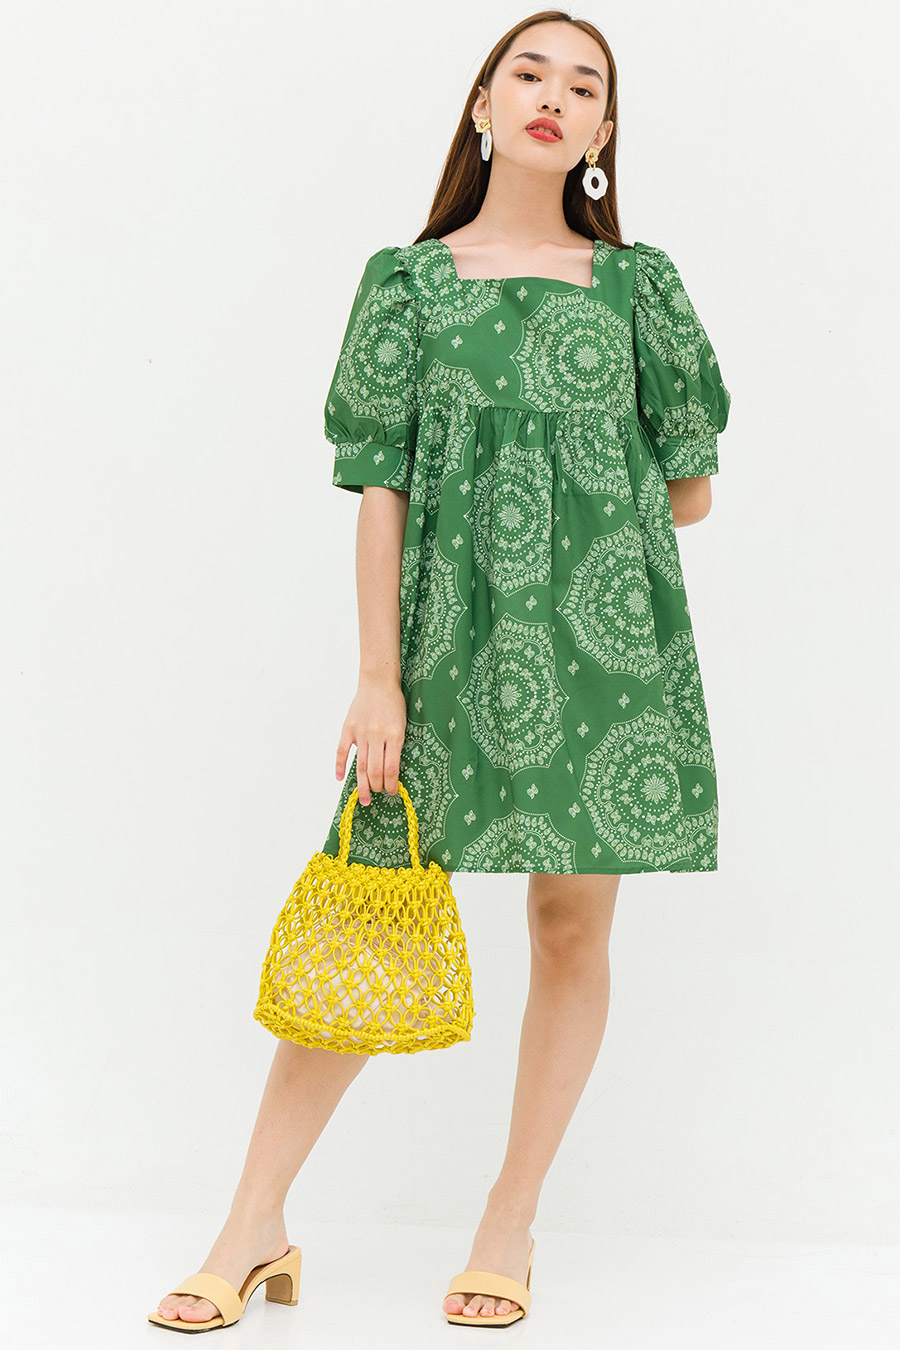 NYDIA DRESS - FOREST GREEN